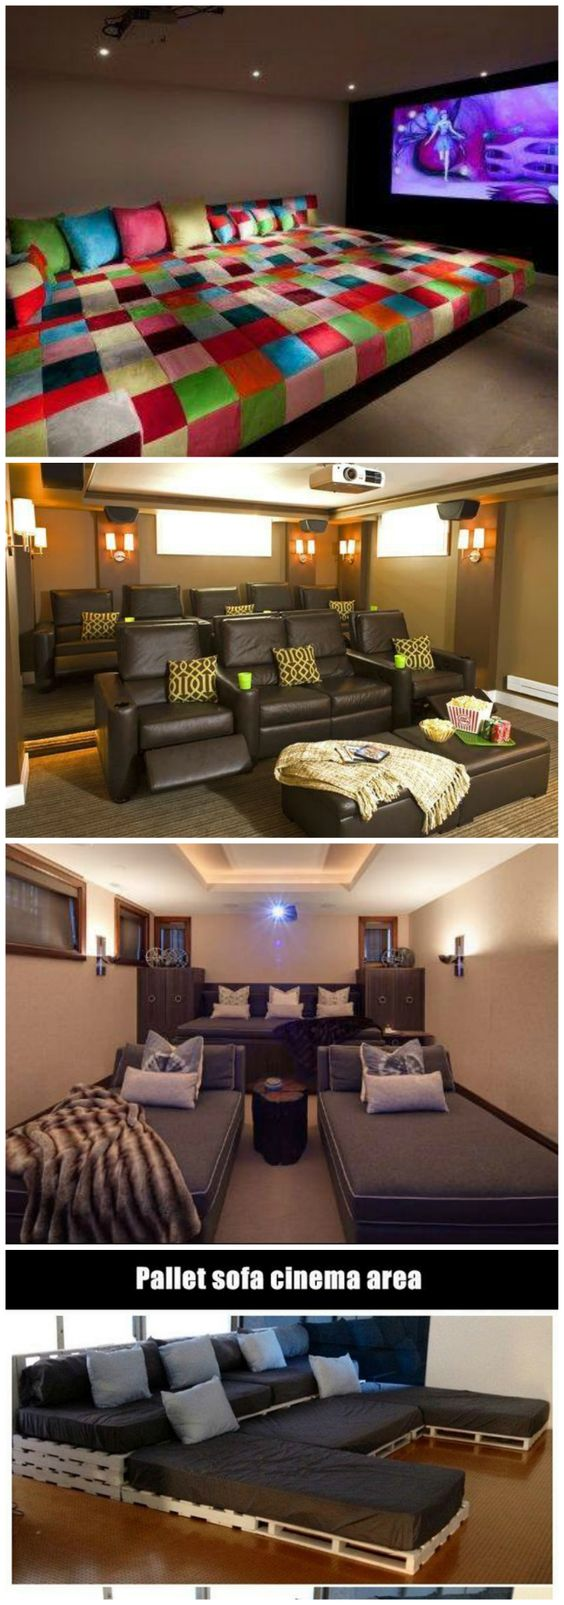 7 Basement Ideas On A Budget Chic Convenience For The Home: Home Movie Theater Ideas